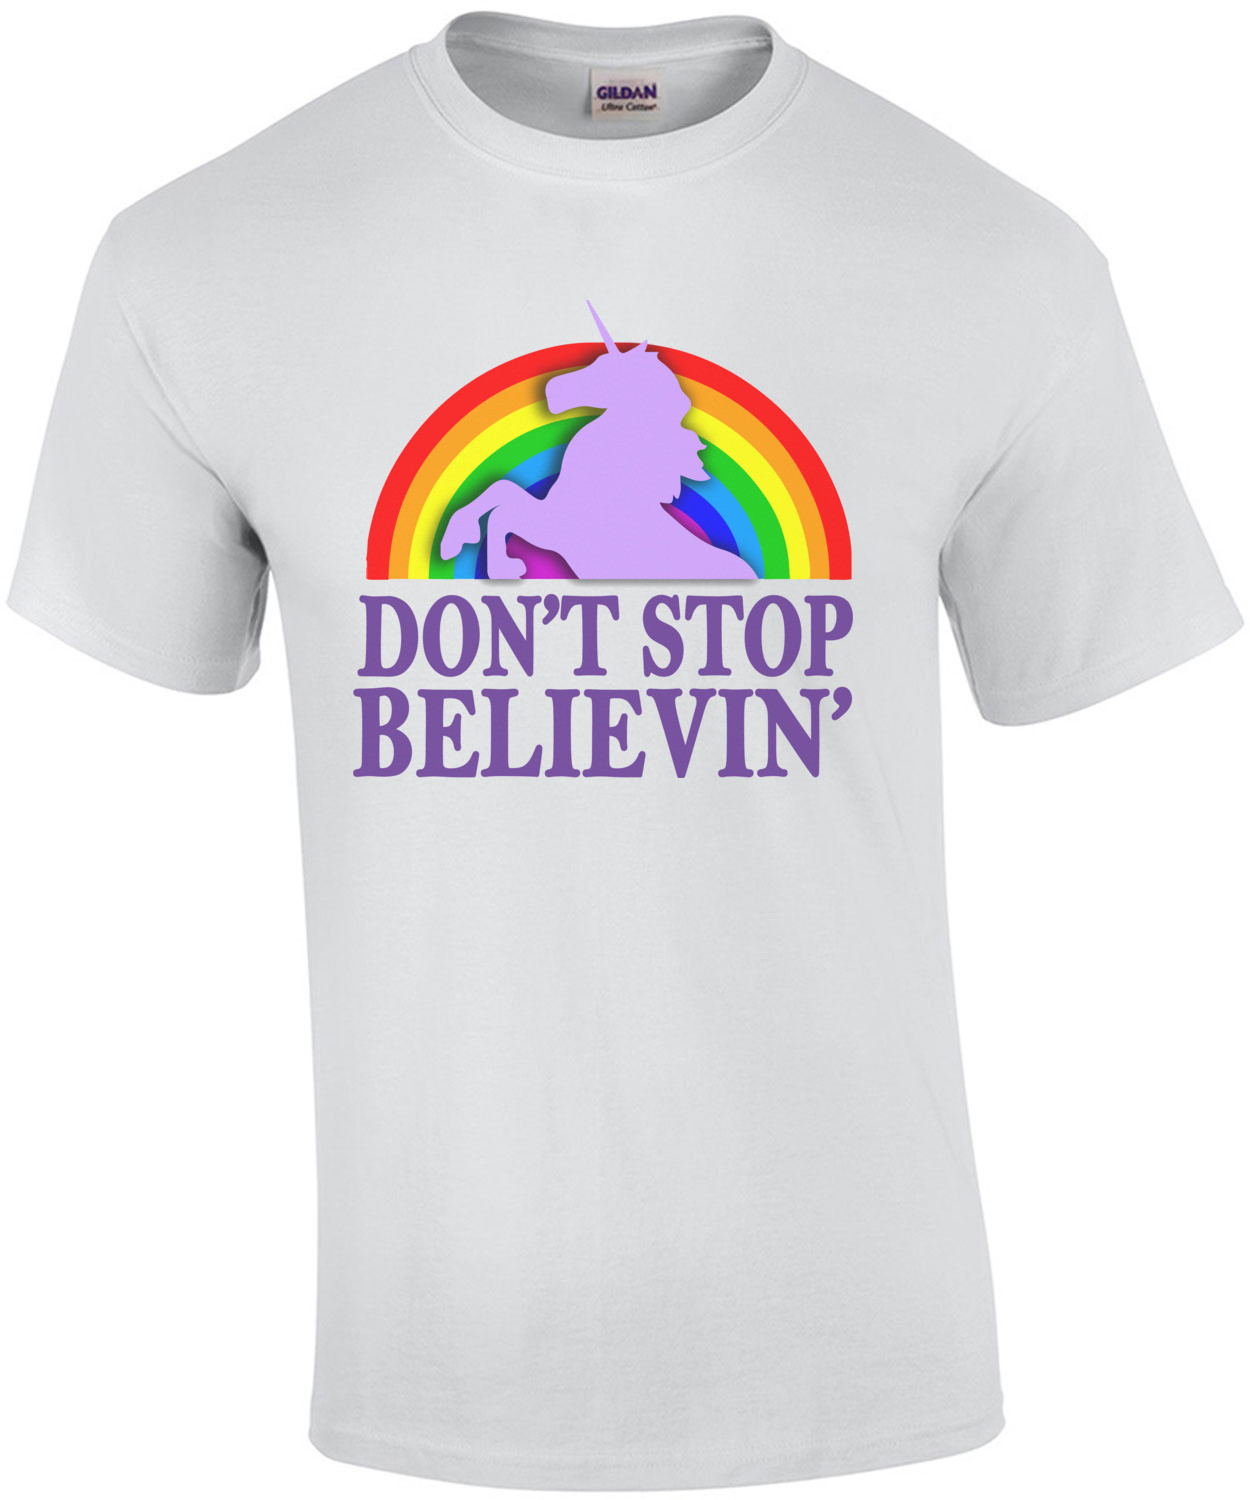 Don't stop believin' Funny T-Shirt